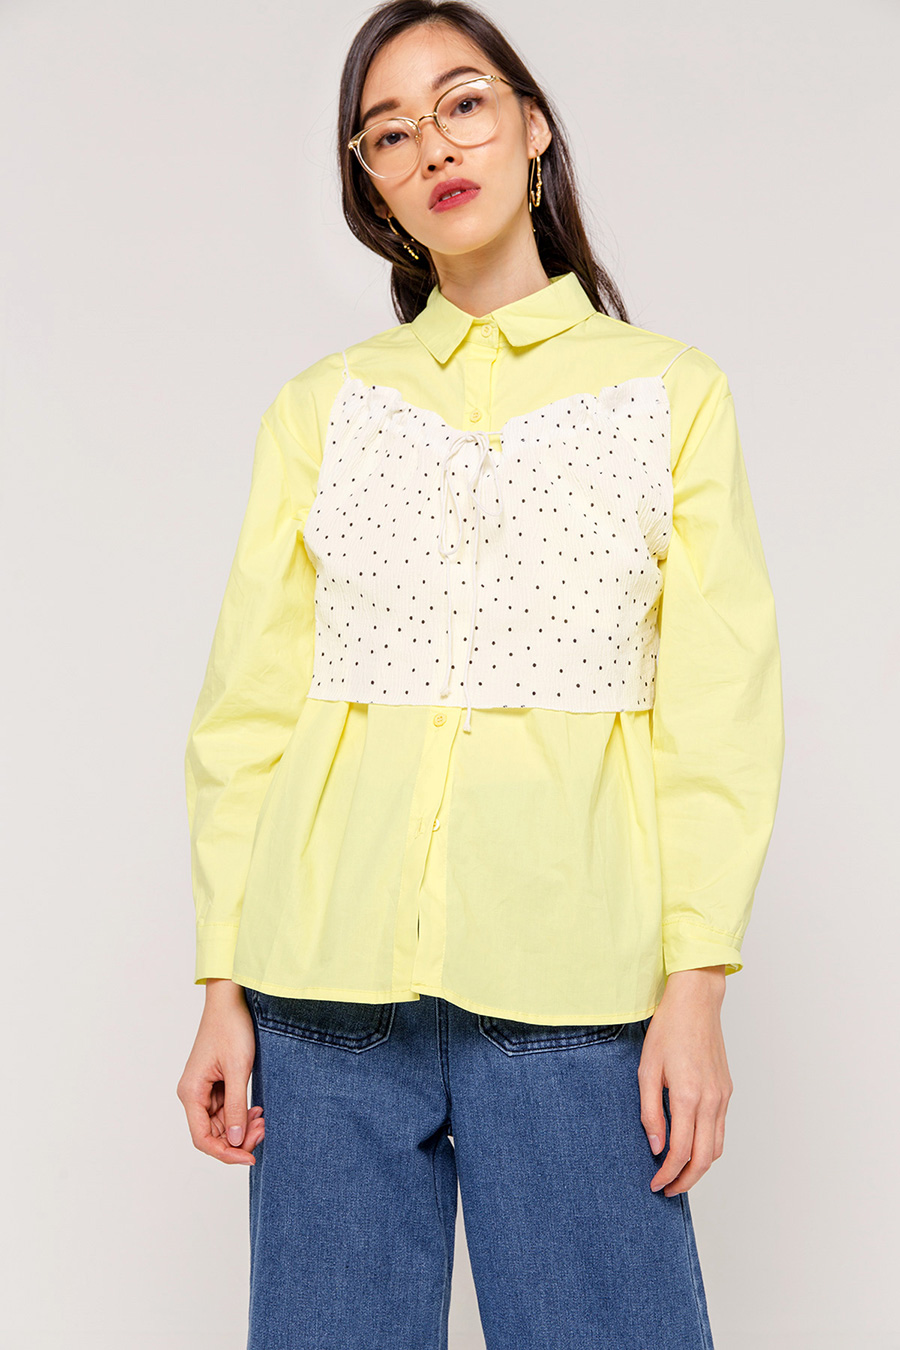 FRANNIE CRINKLED CROPPED BLOUSE - IVORY [QUEENDOM]